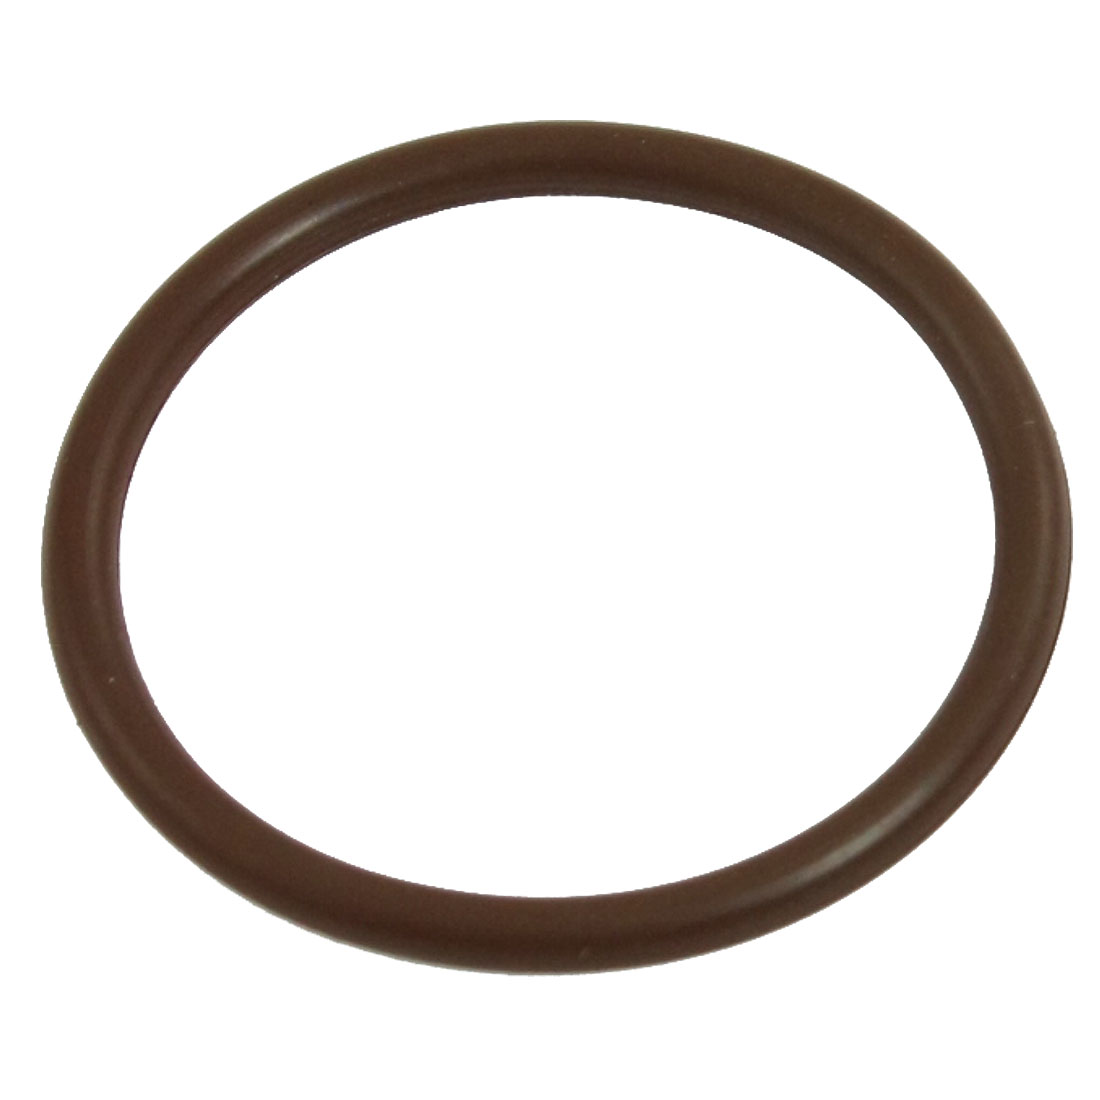 33mm x 39mm x 3mm Fluorine Rubber Sealing O Ring Gasket Washer Seal